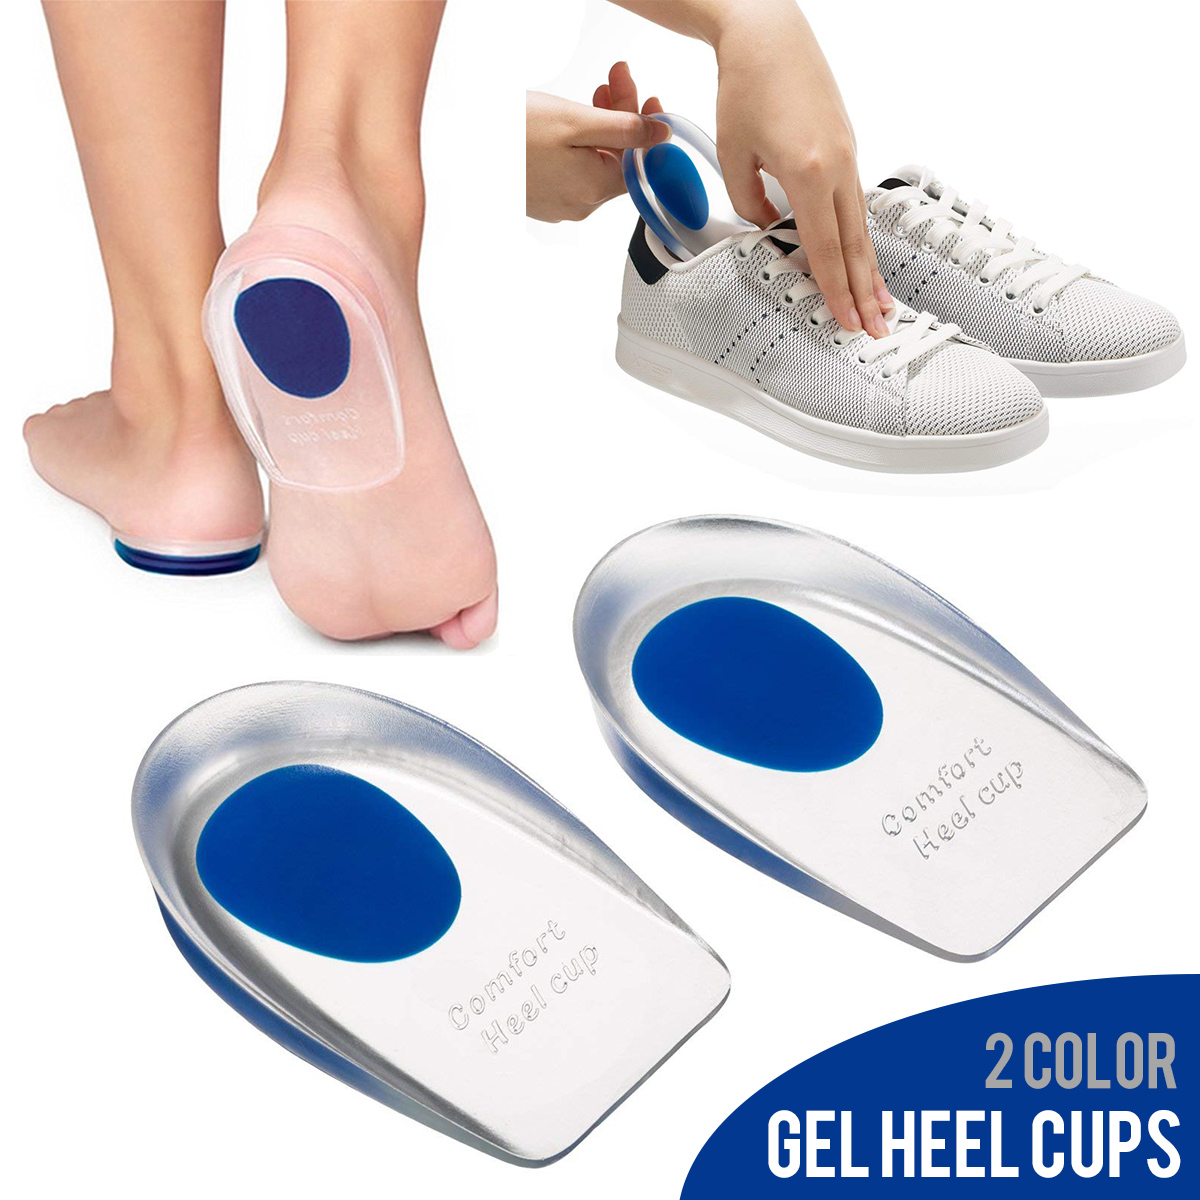 Silicone Heel Cup Pads Gel Heel Cups Plantar Fasciitis Inserts Foot Care Silica Gel Cushion Pad (Large/Small)